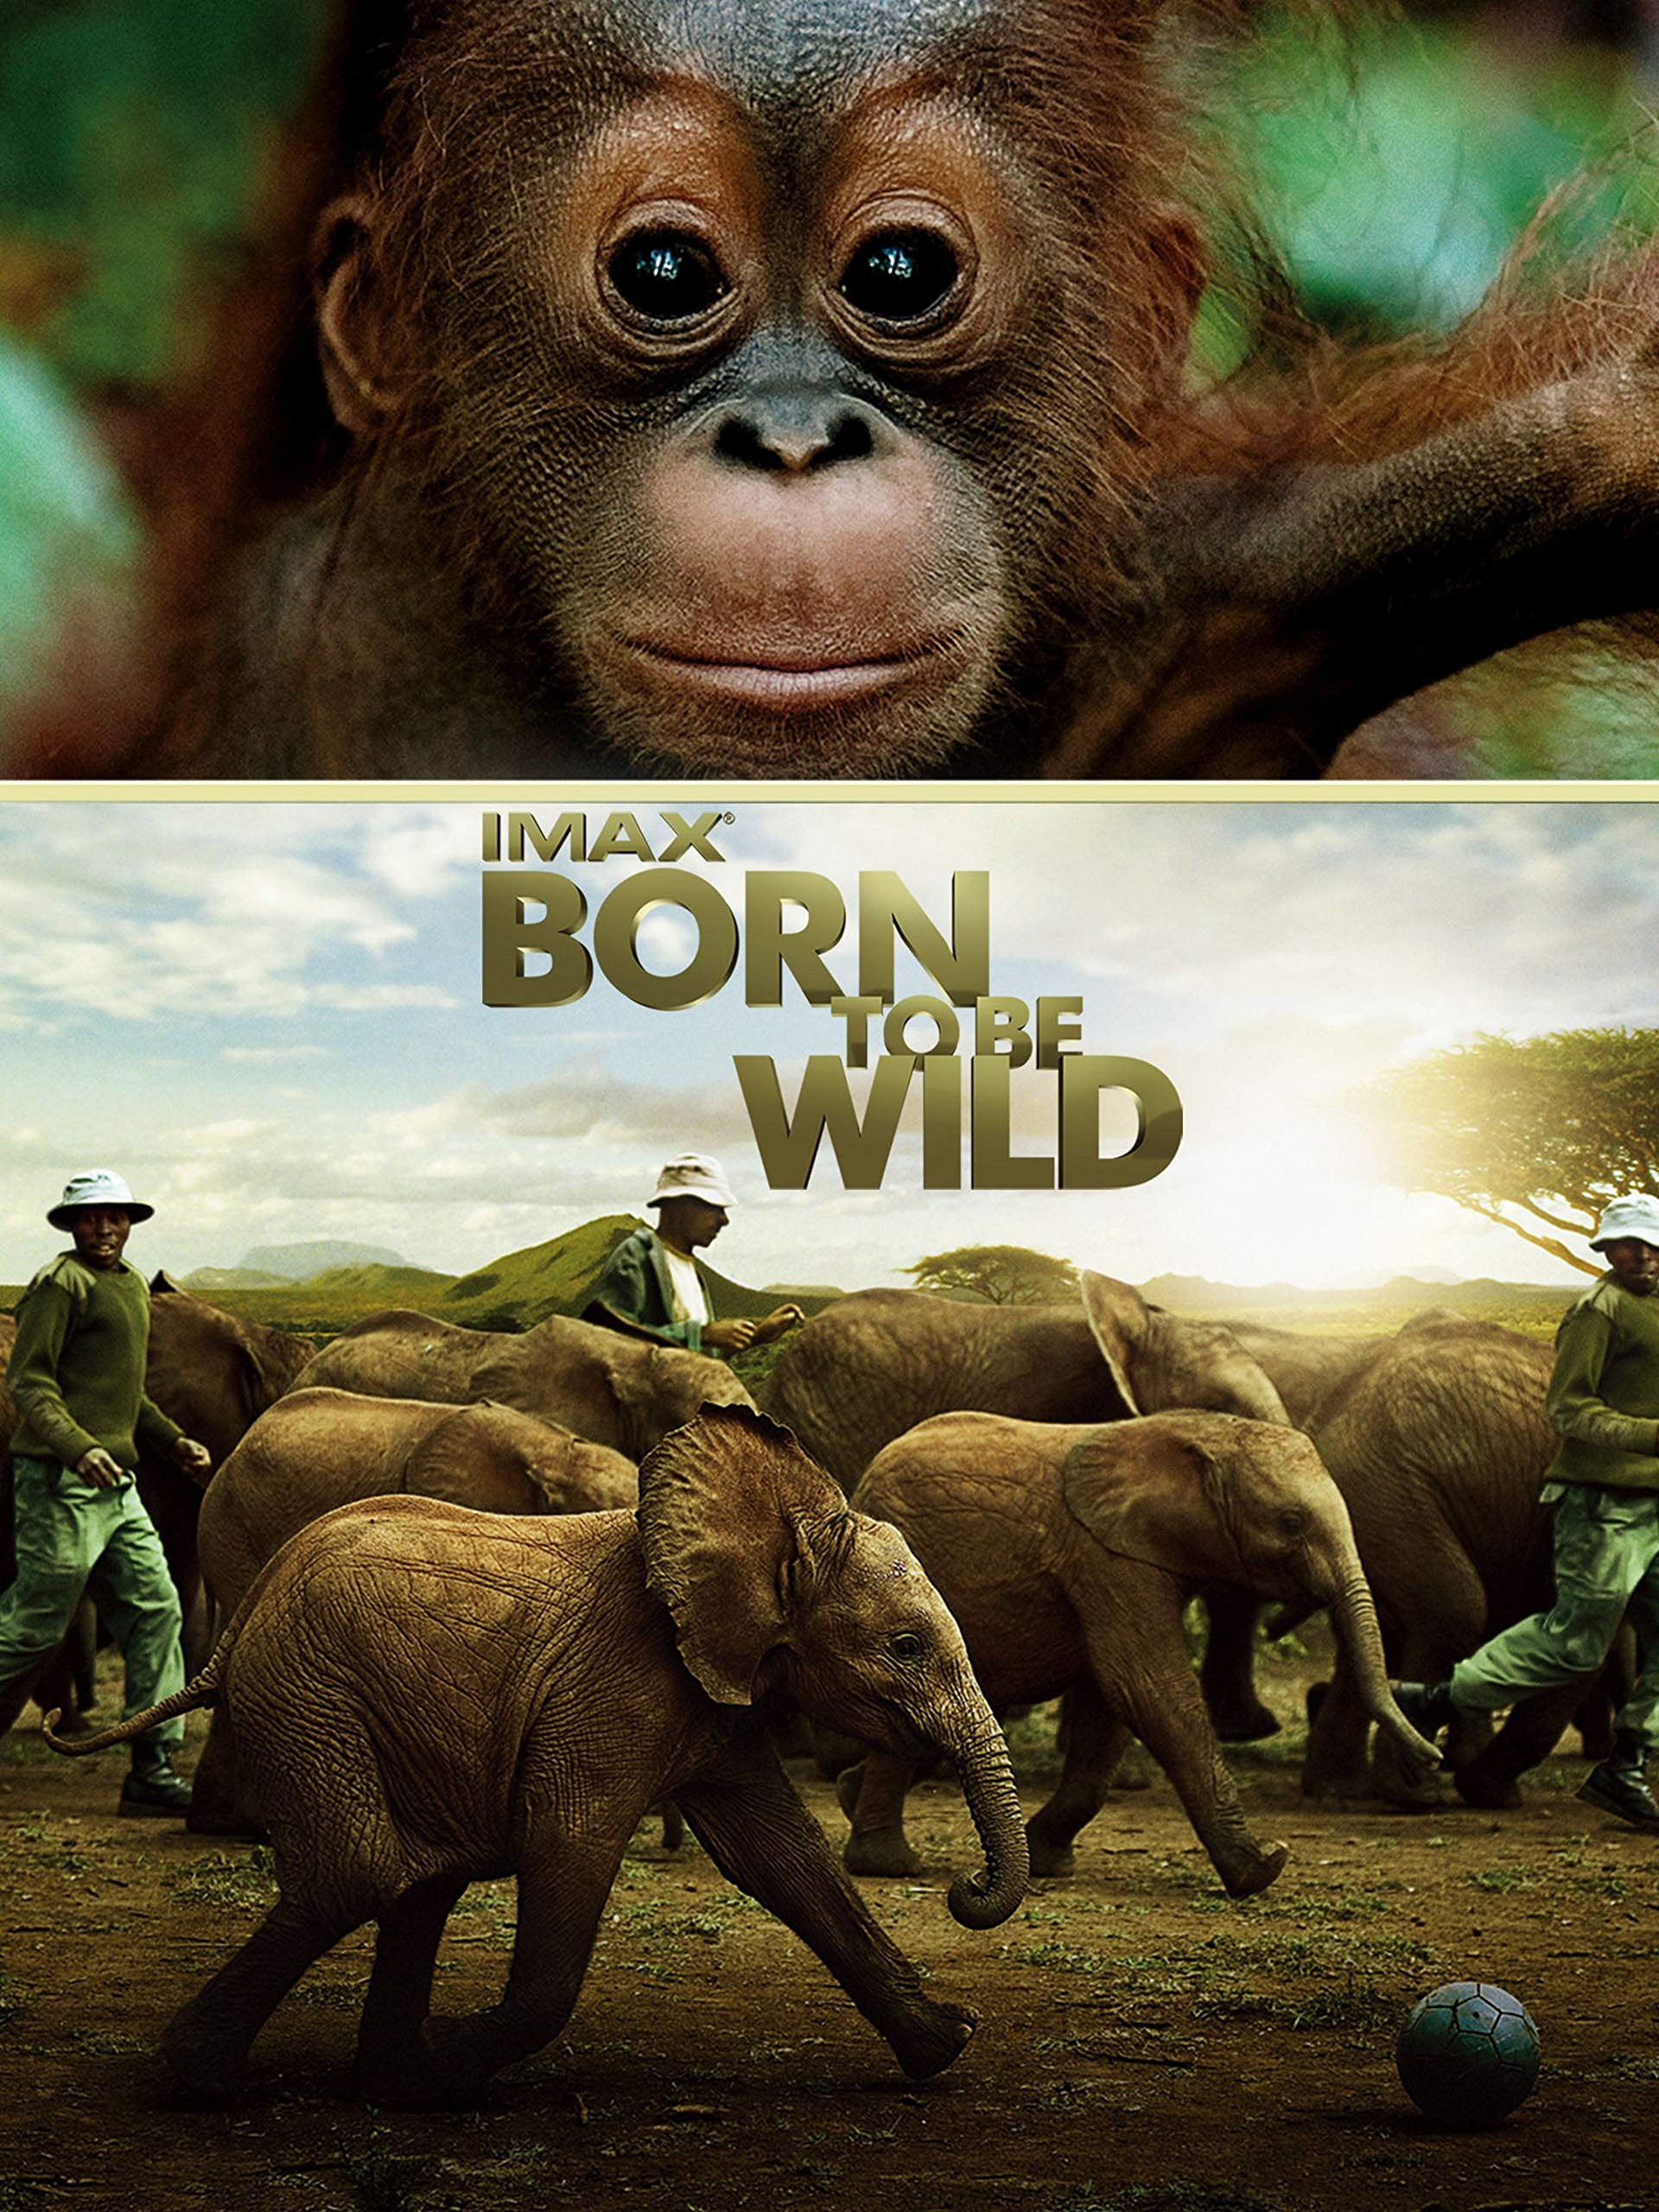 Watch IMAX Born to Be Wild | Prime Video